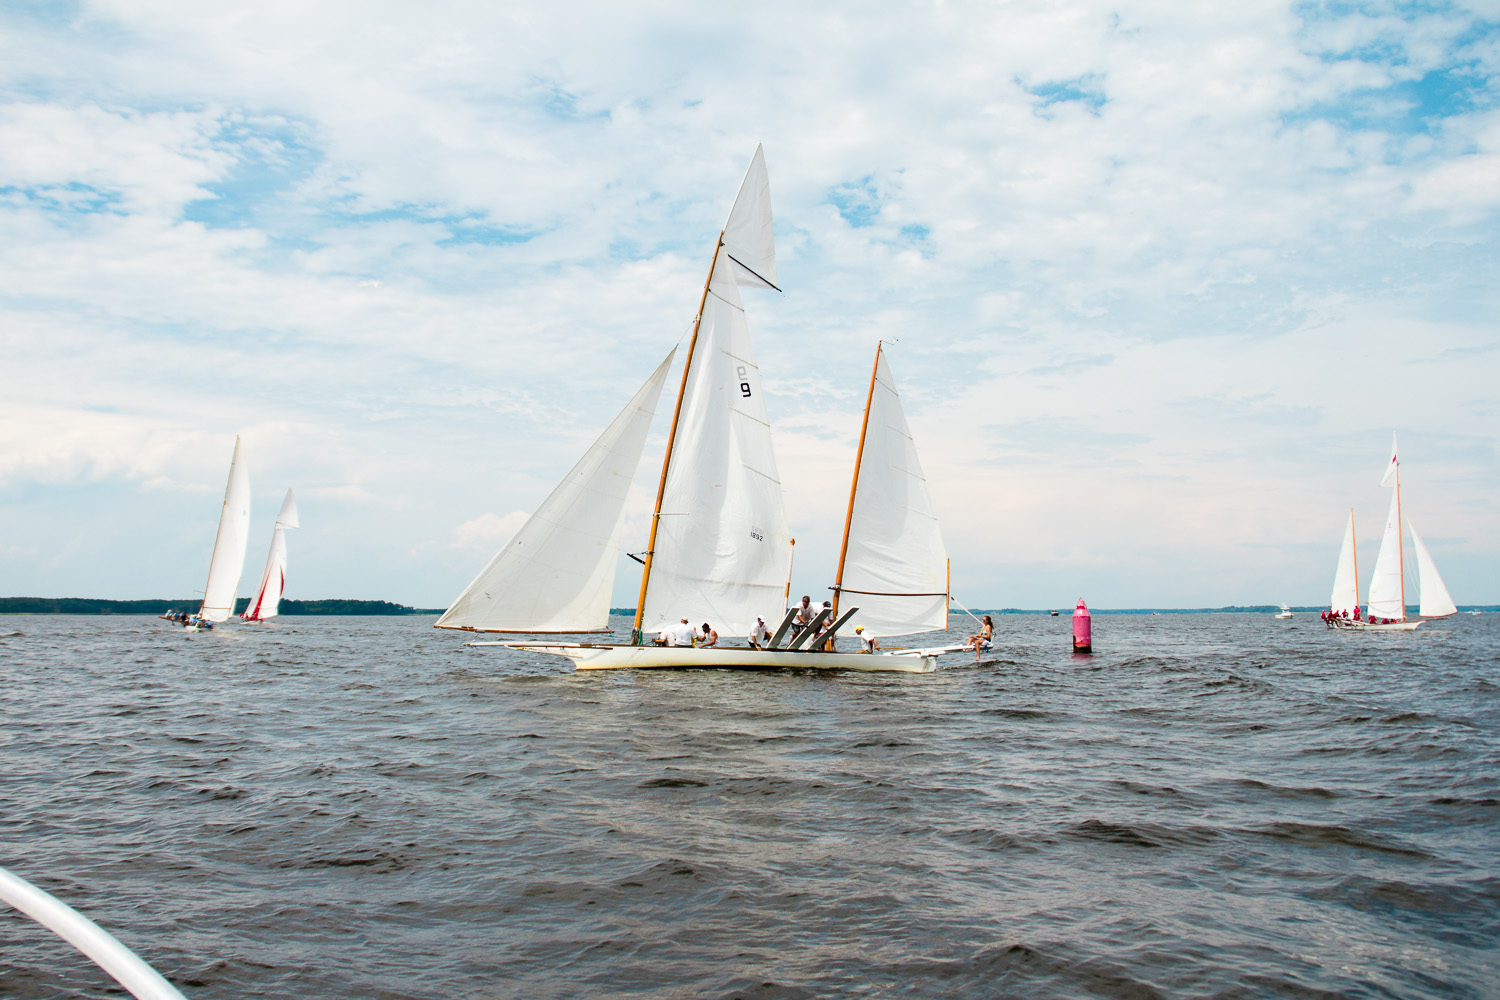 Log-Canoe-Race-at-Rock-Hall-Yacht-Club-July-2016-ss-22.jpg